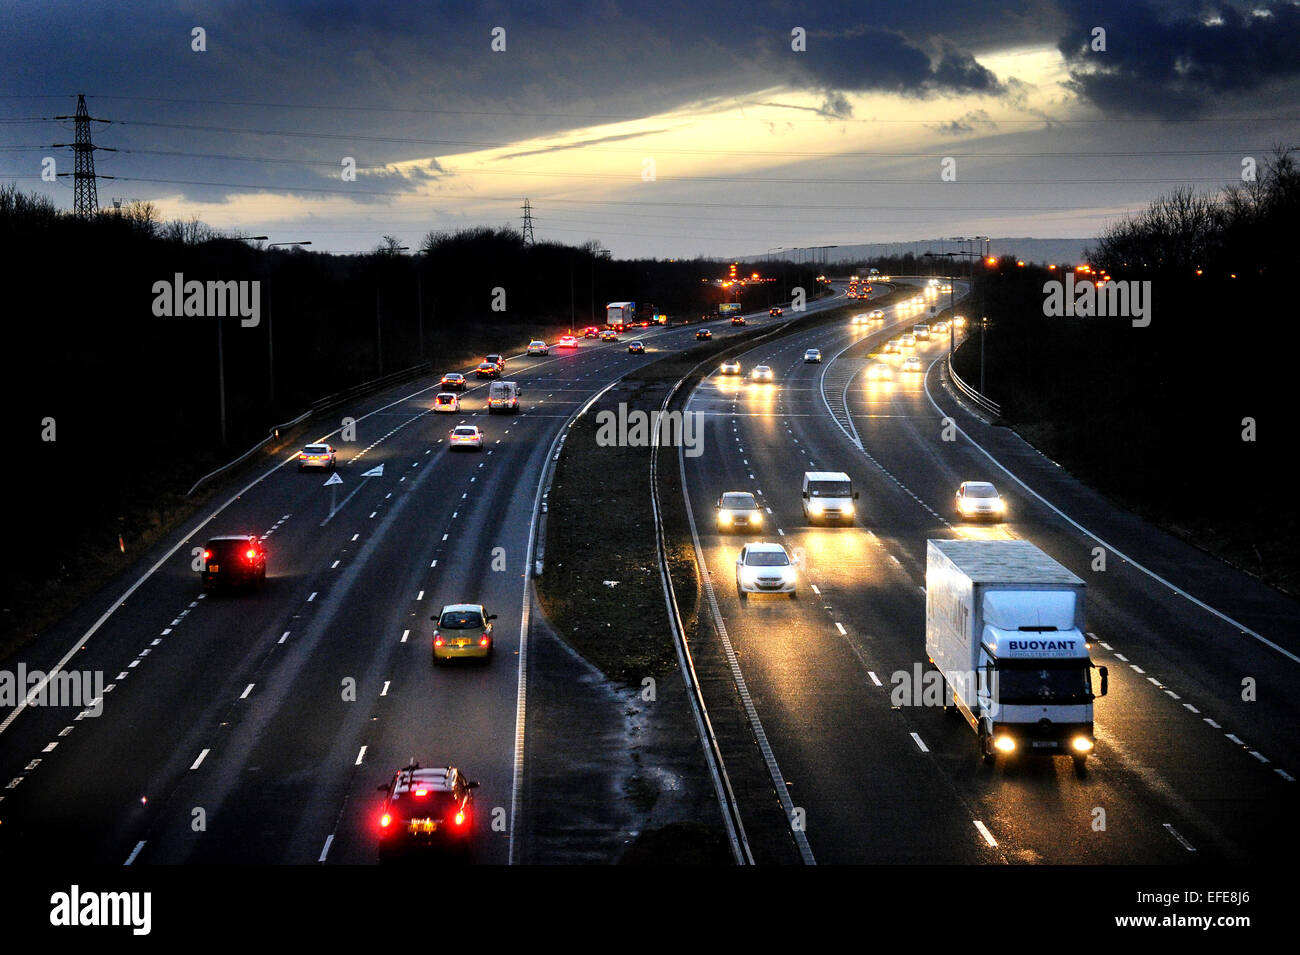 No street lighting on the M65 at junction 8 for the A56. Picture by Paul Heyes, Monday January 12, 2015. Stock Photo